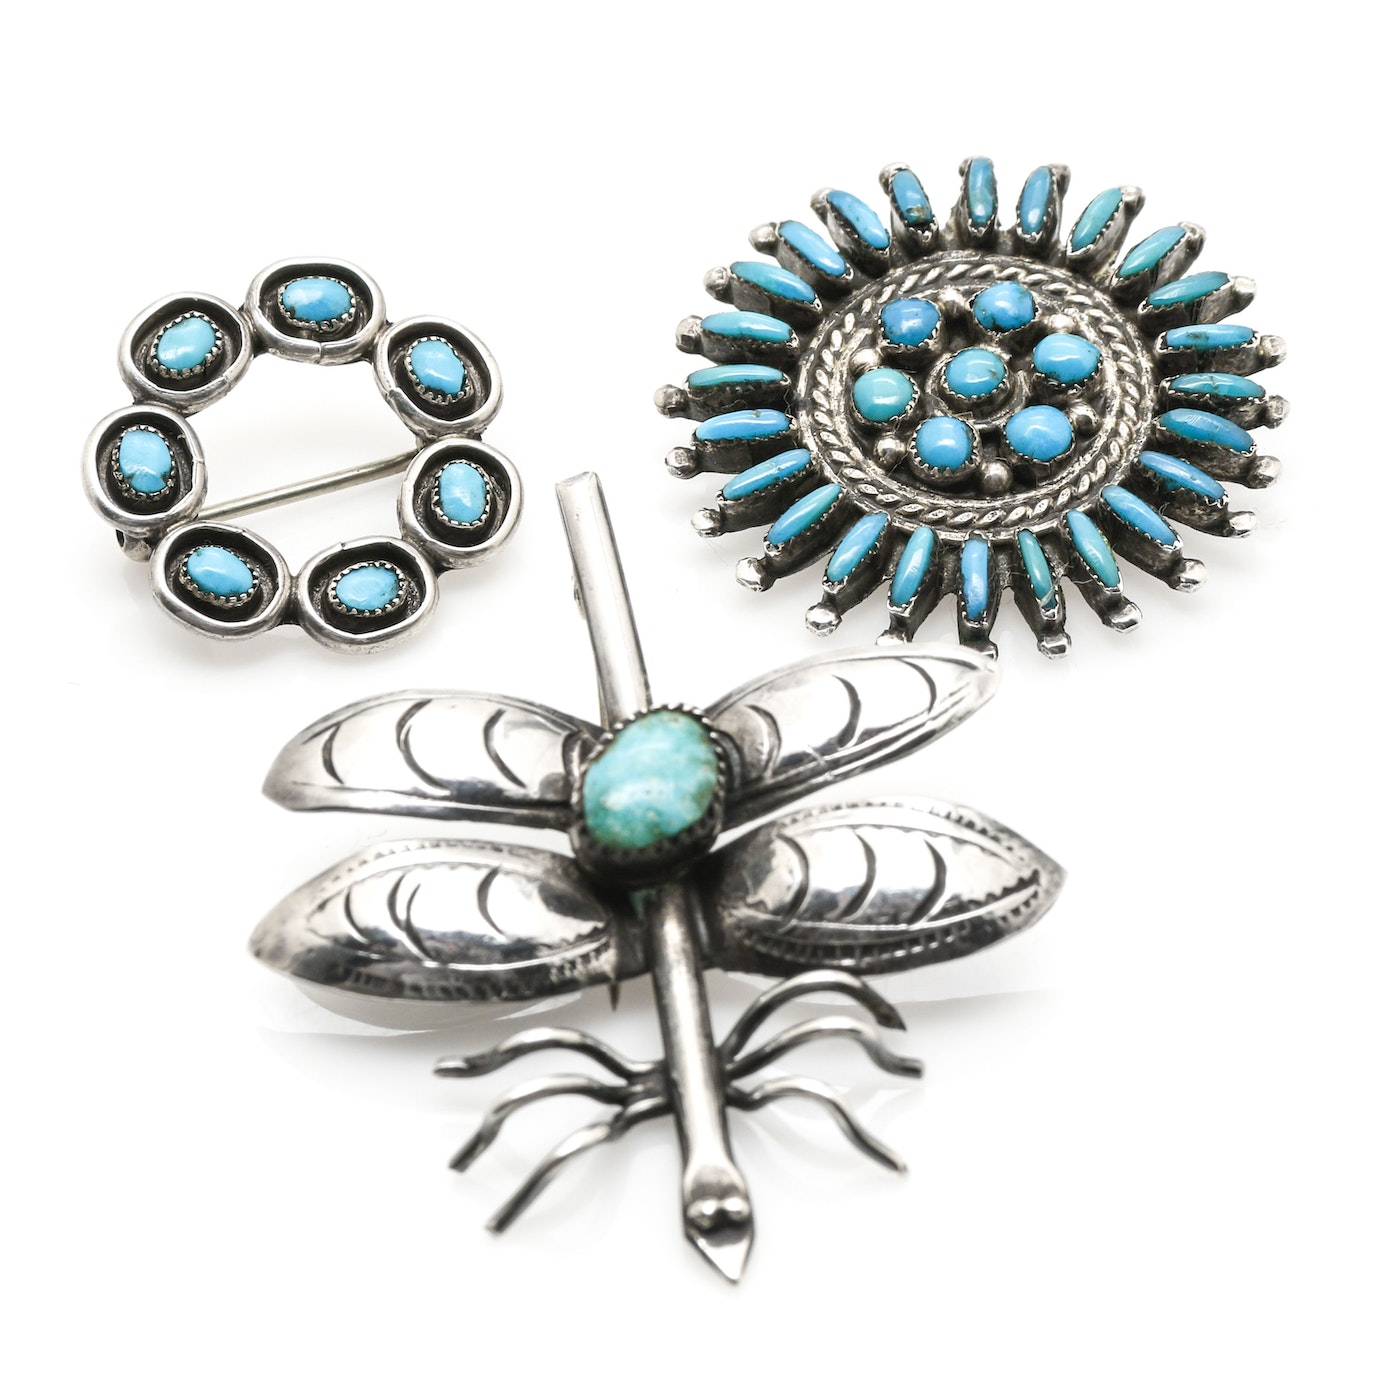 Southwestern style sterling silver turquoise jewelry for Southwestern silver turquoise jewelry